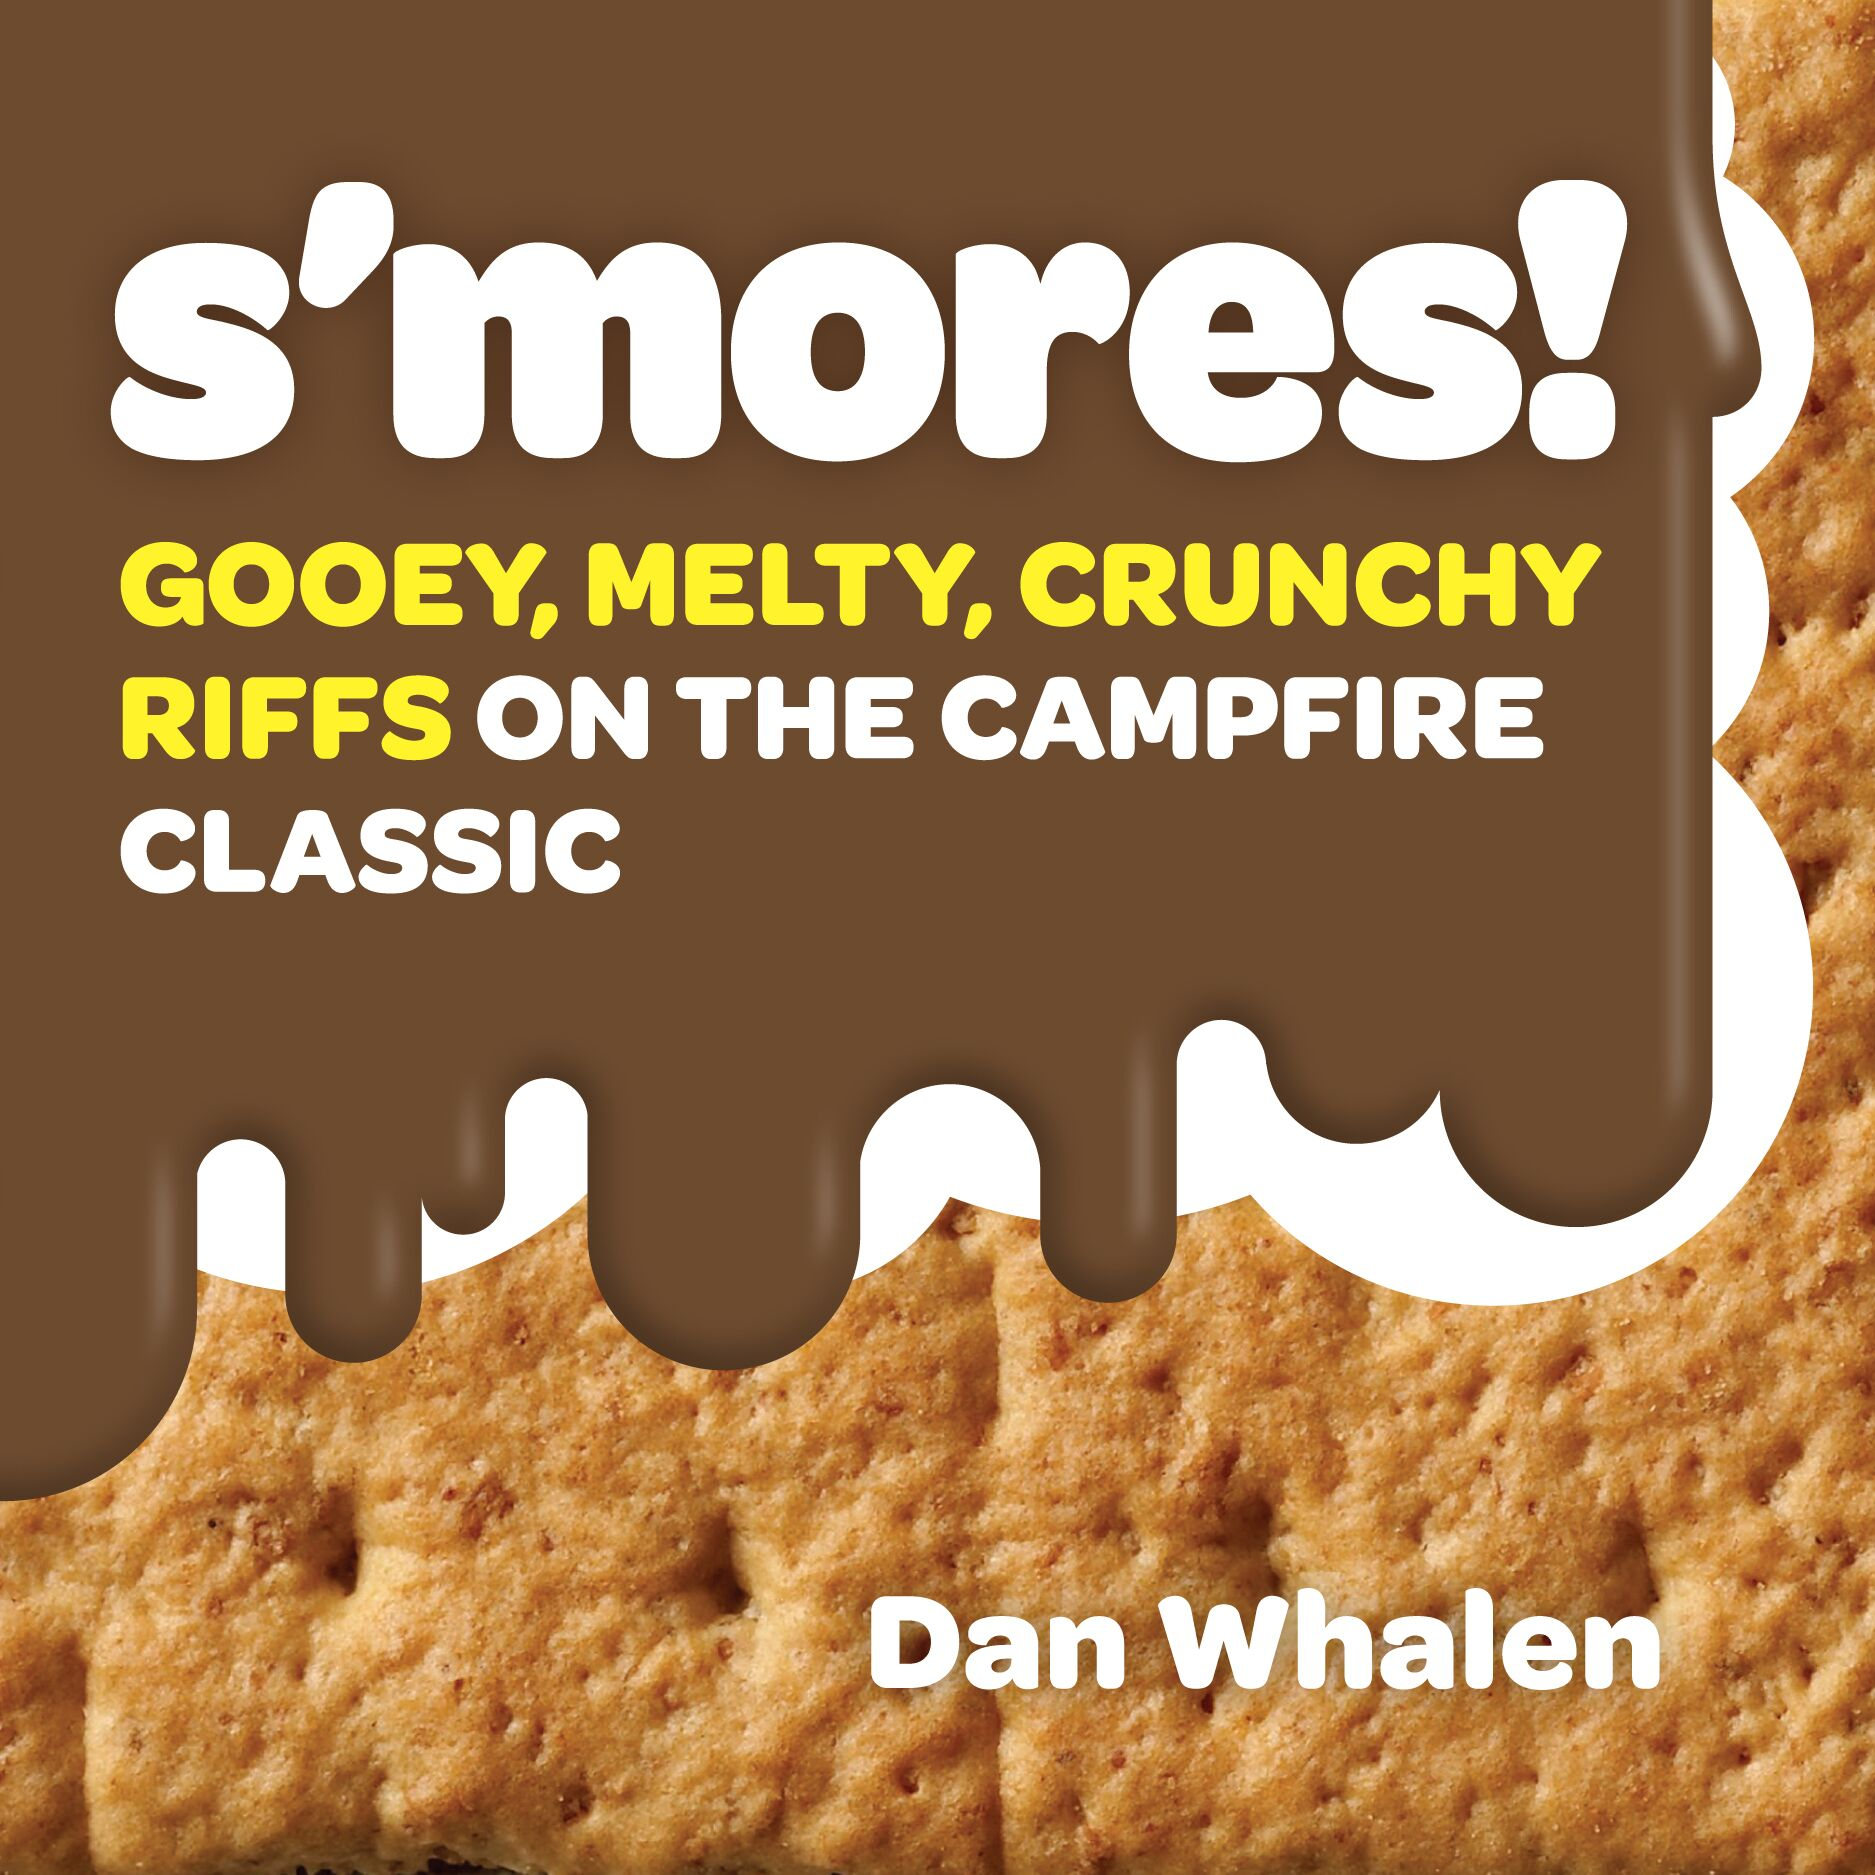 Smore's Cookbook Author on Didn't I Just Feed You Podcast